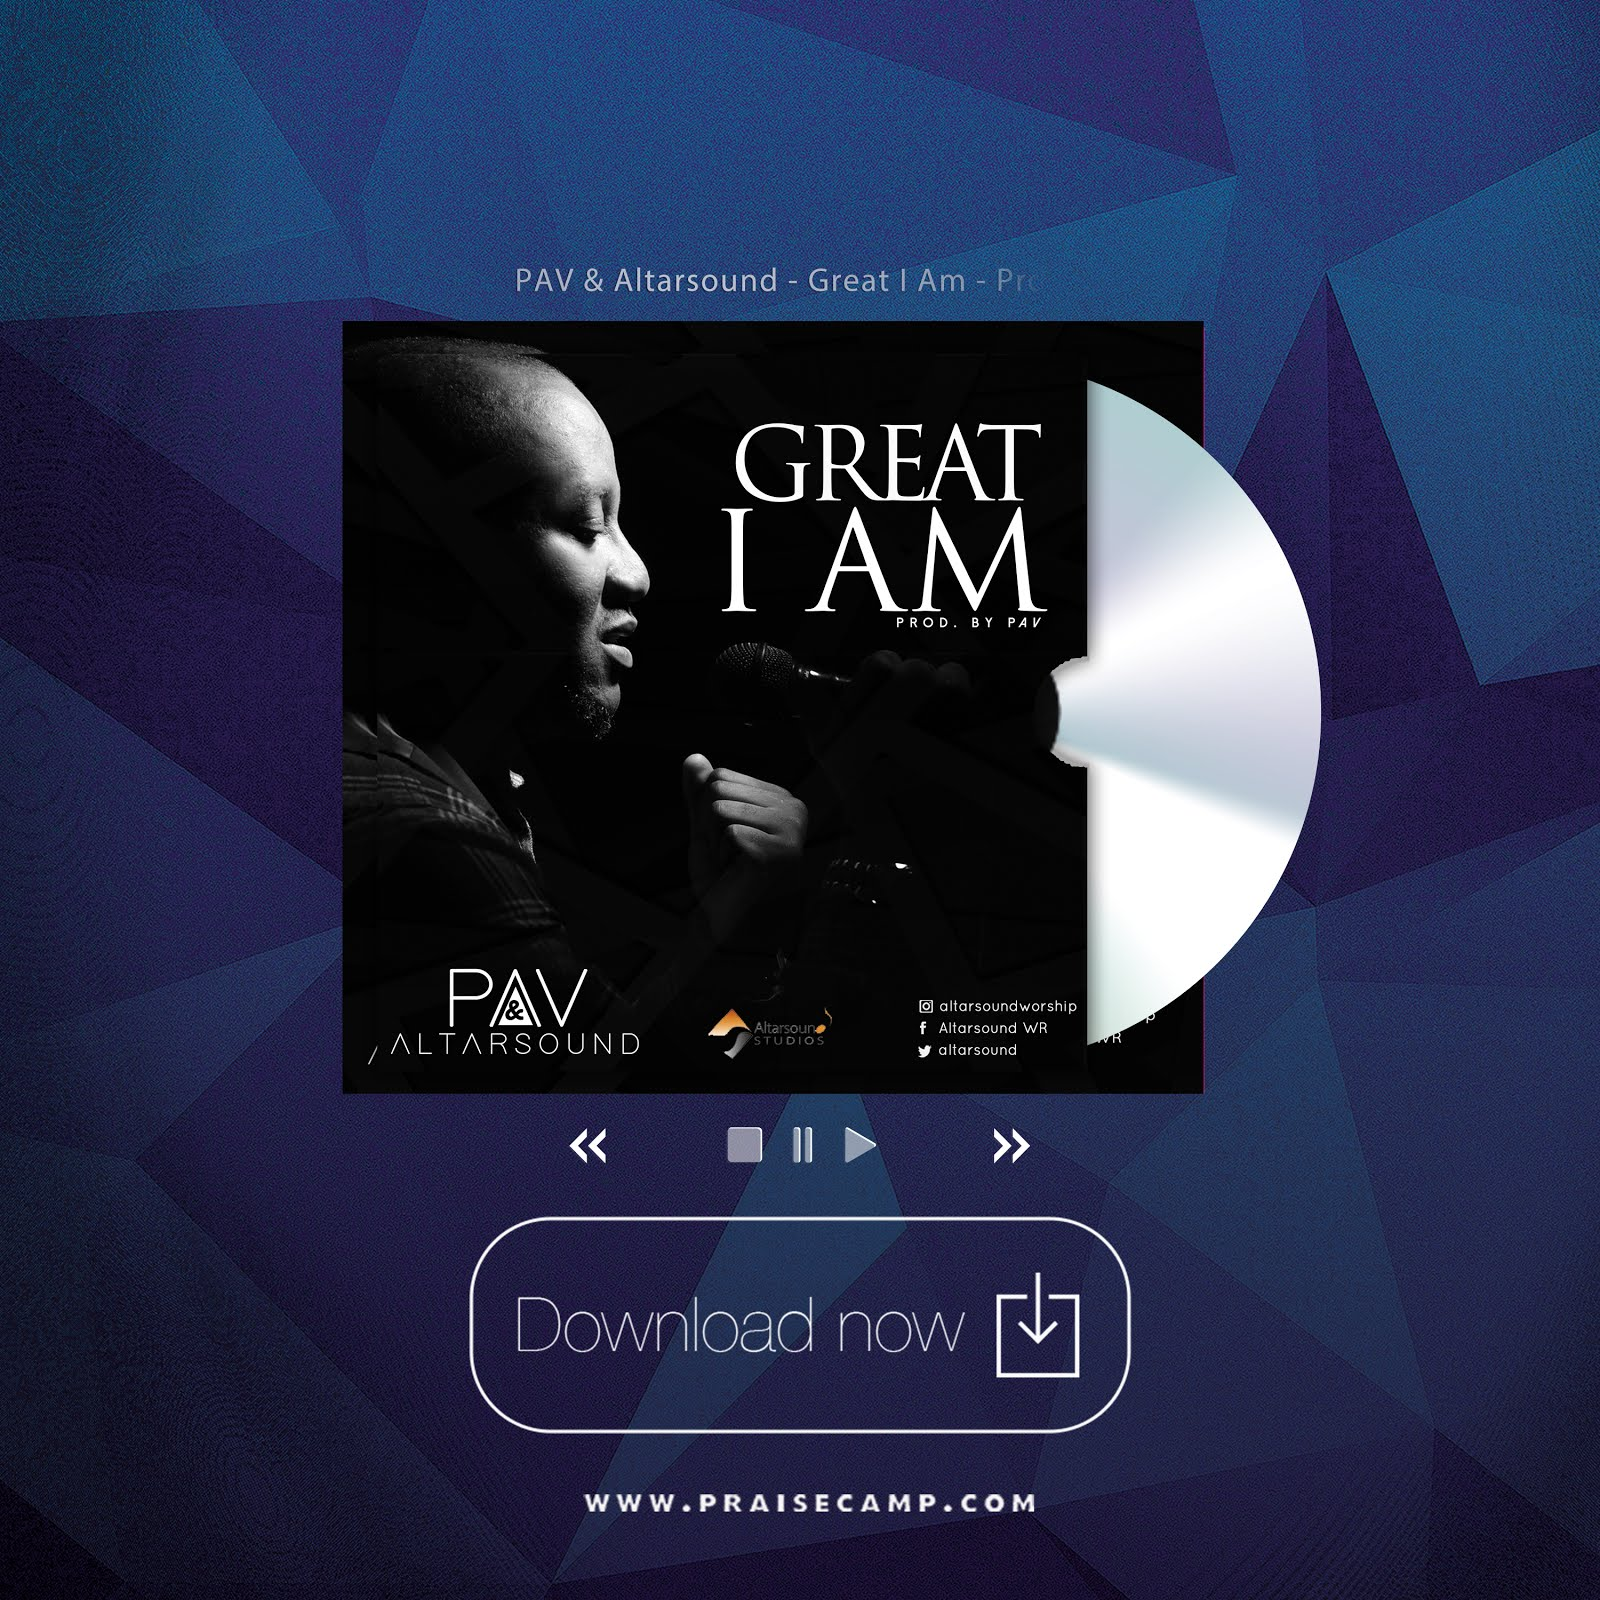 PAV & Altarsound - Great I Am